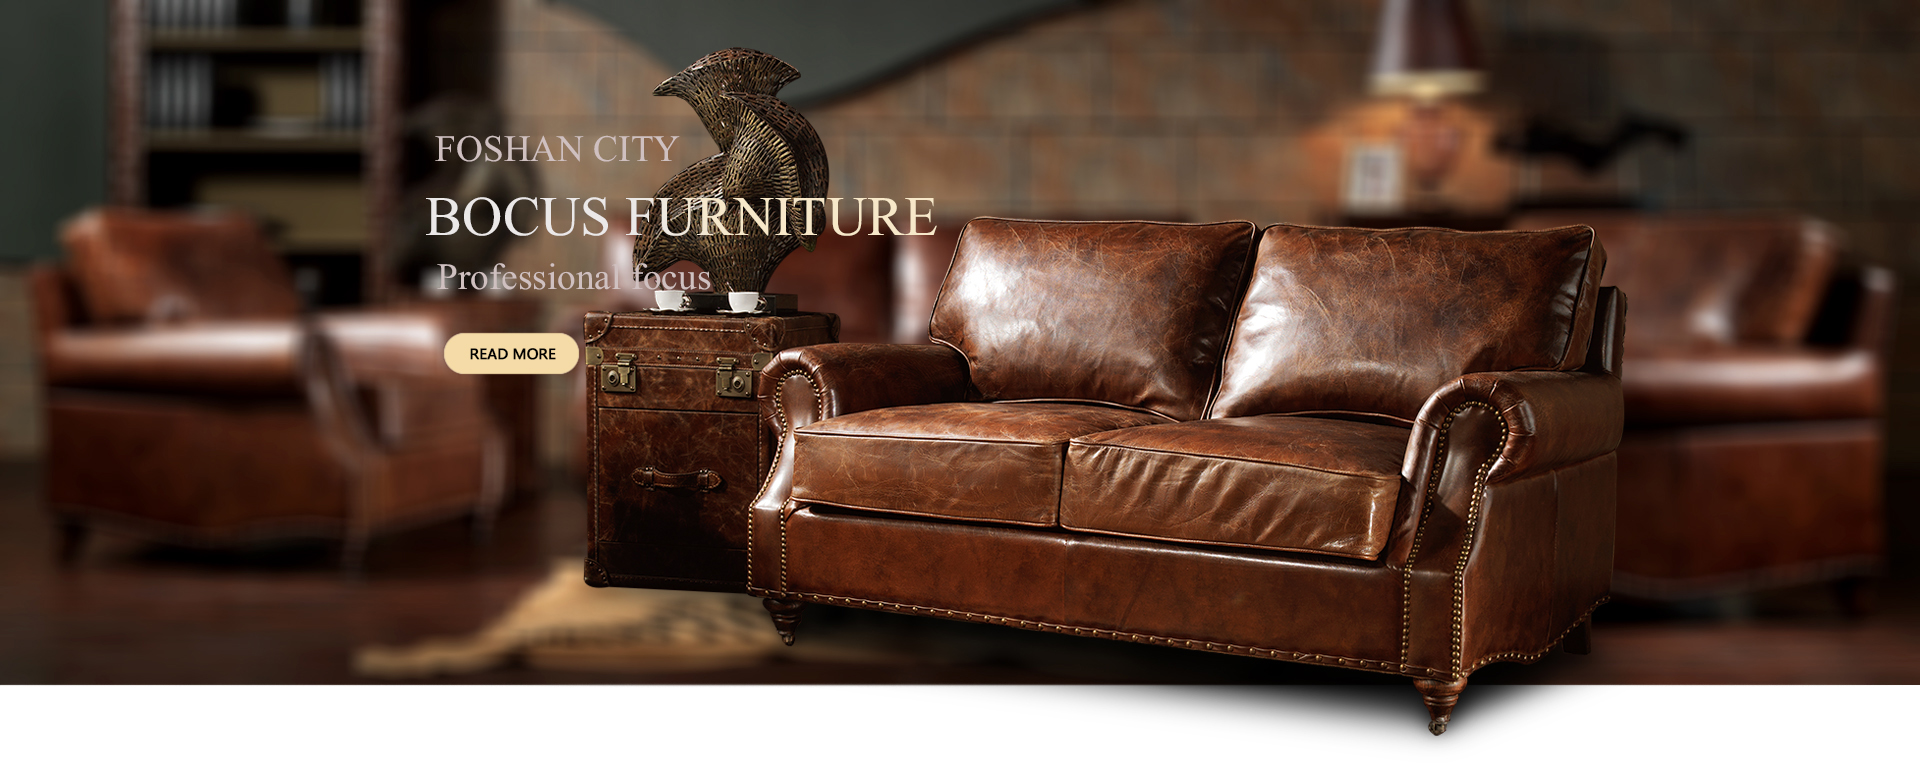 Retro Sofa Leather Retro Style Furniture Retro Style Furniture Factory Bocus